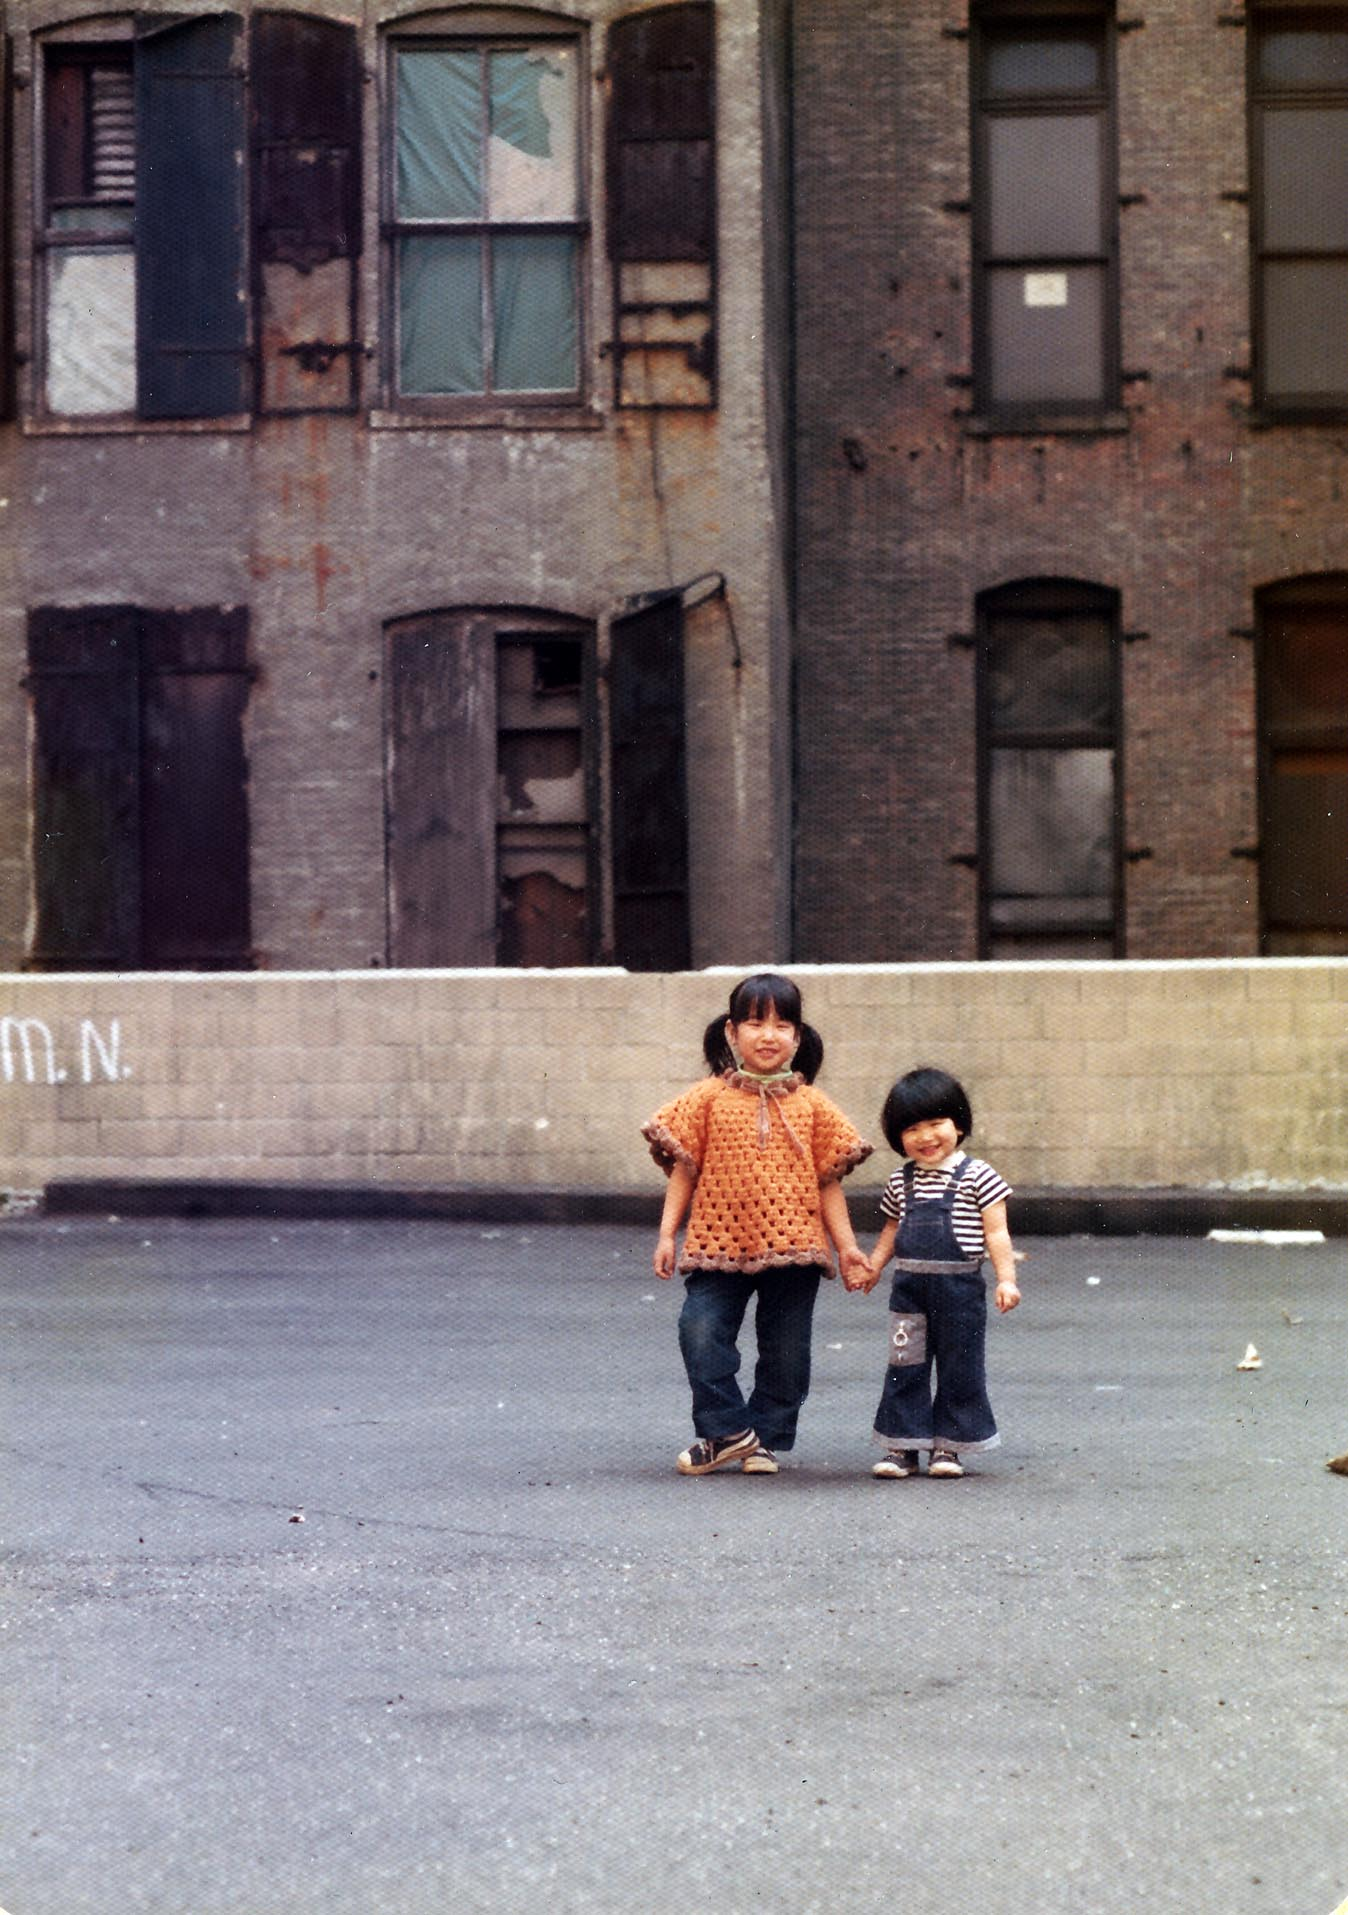 This photo of me and my sister was taken in 1974 in the parking lot on Crosby Street between Prince and Spring, the current site of the Crosby Hotel, where we would often play.